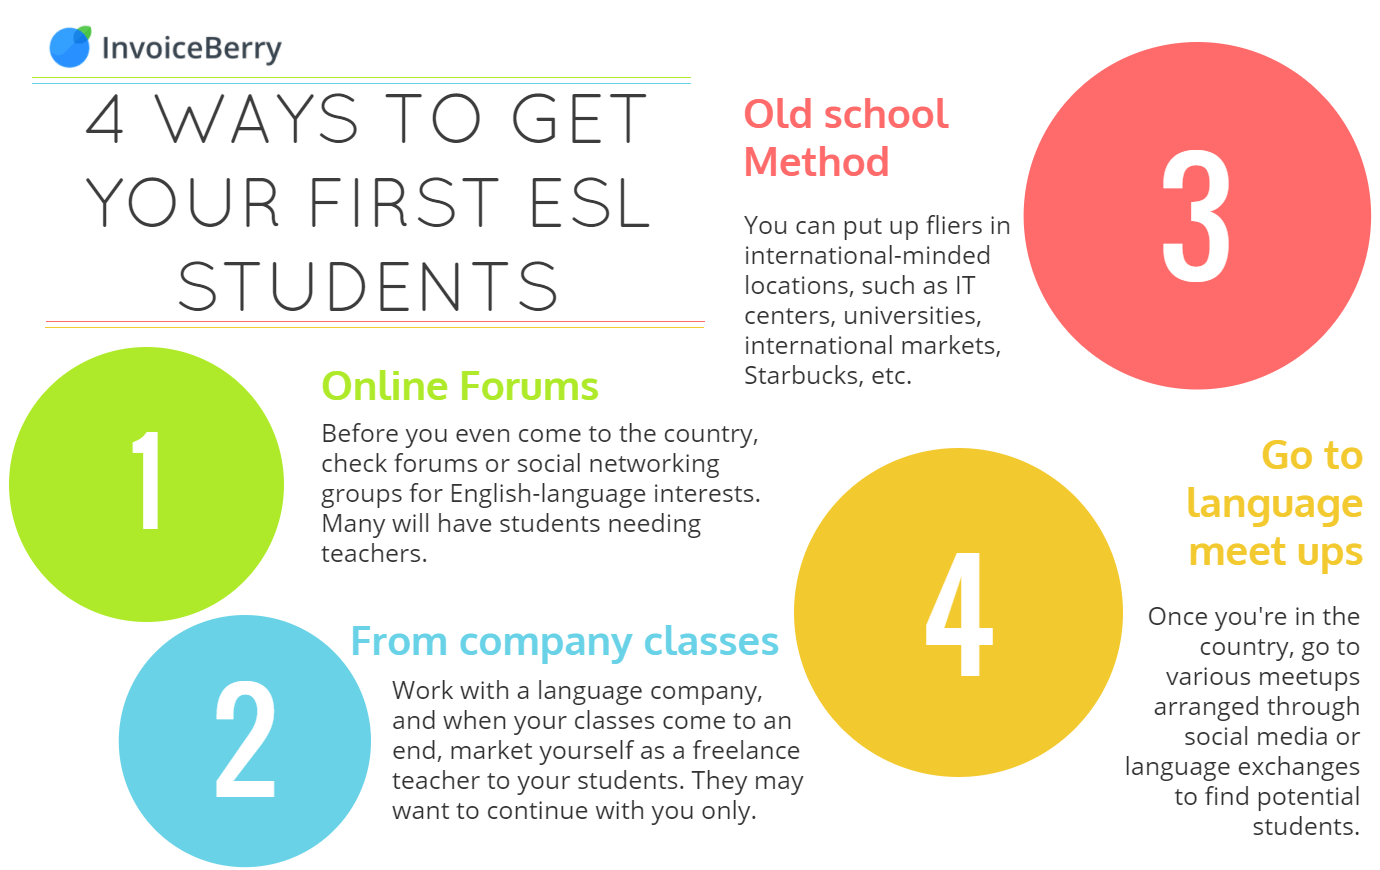 Use these 4 simple ways to get your first ESL students